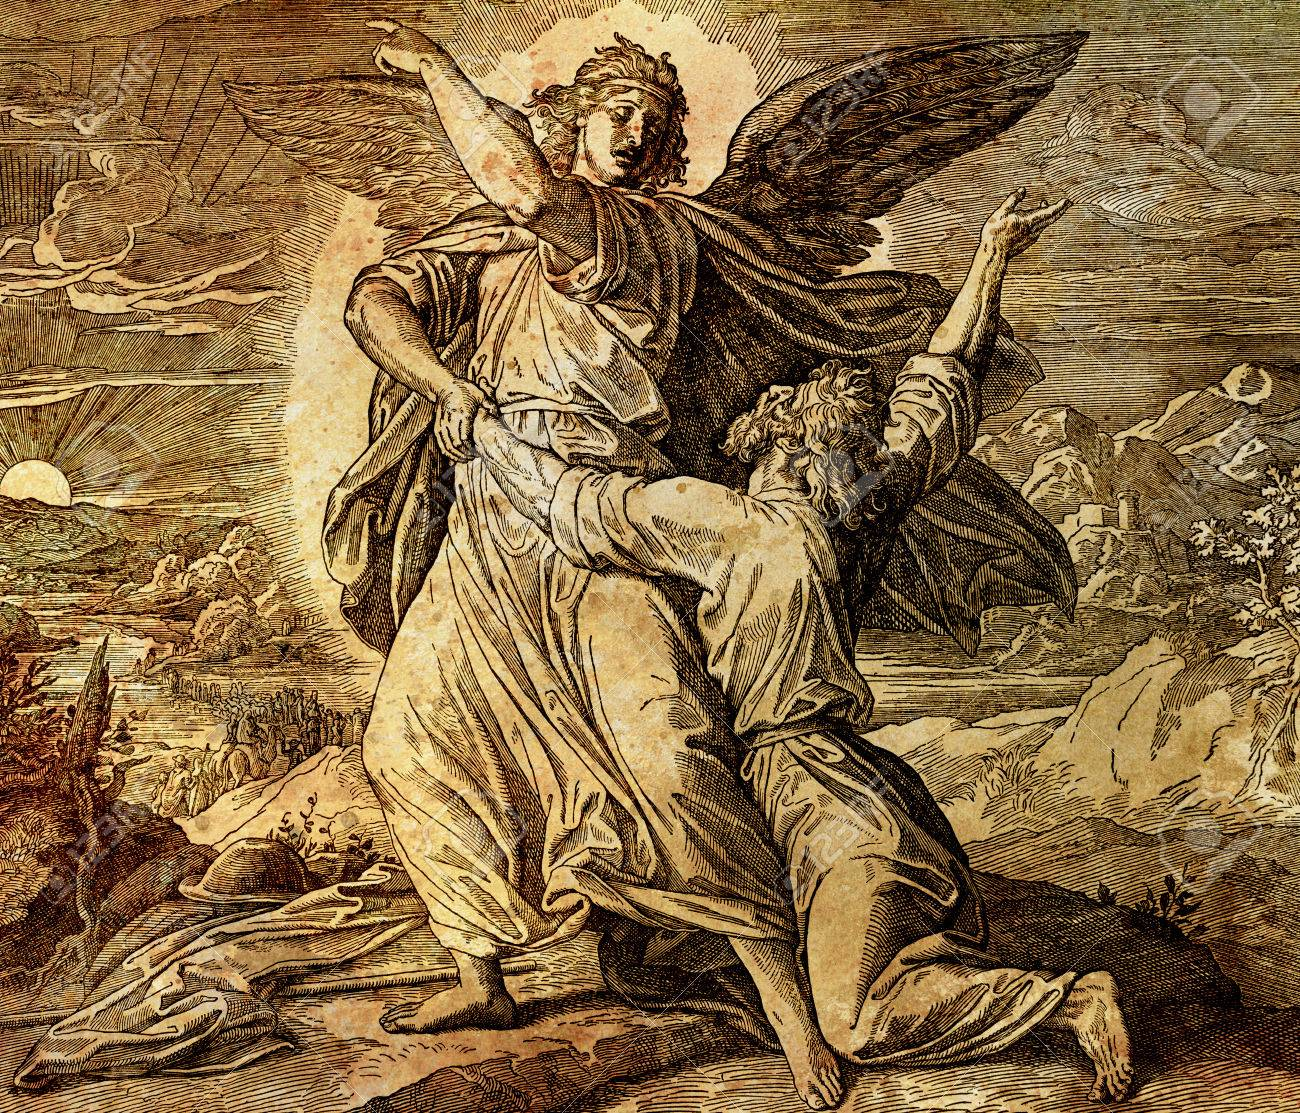 Jacob wrestling with the angel of god, graphic collage from engraving of Nazareene School, published in The Holy Bible, St.Vojtech Publishing, Trnava, Slovakia, 1937. - 75780408